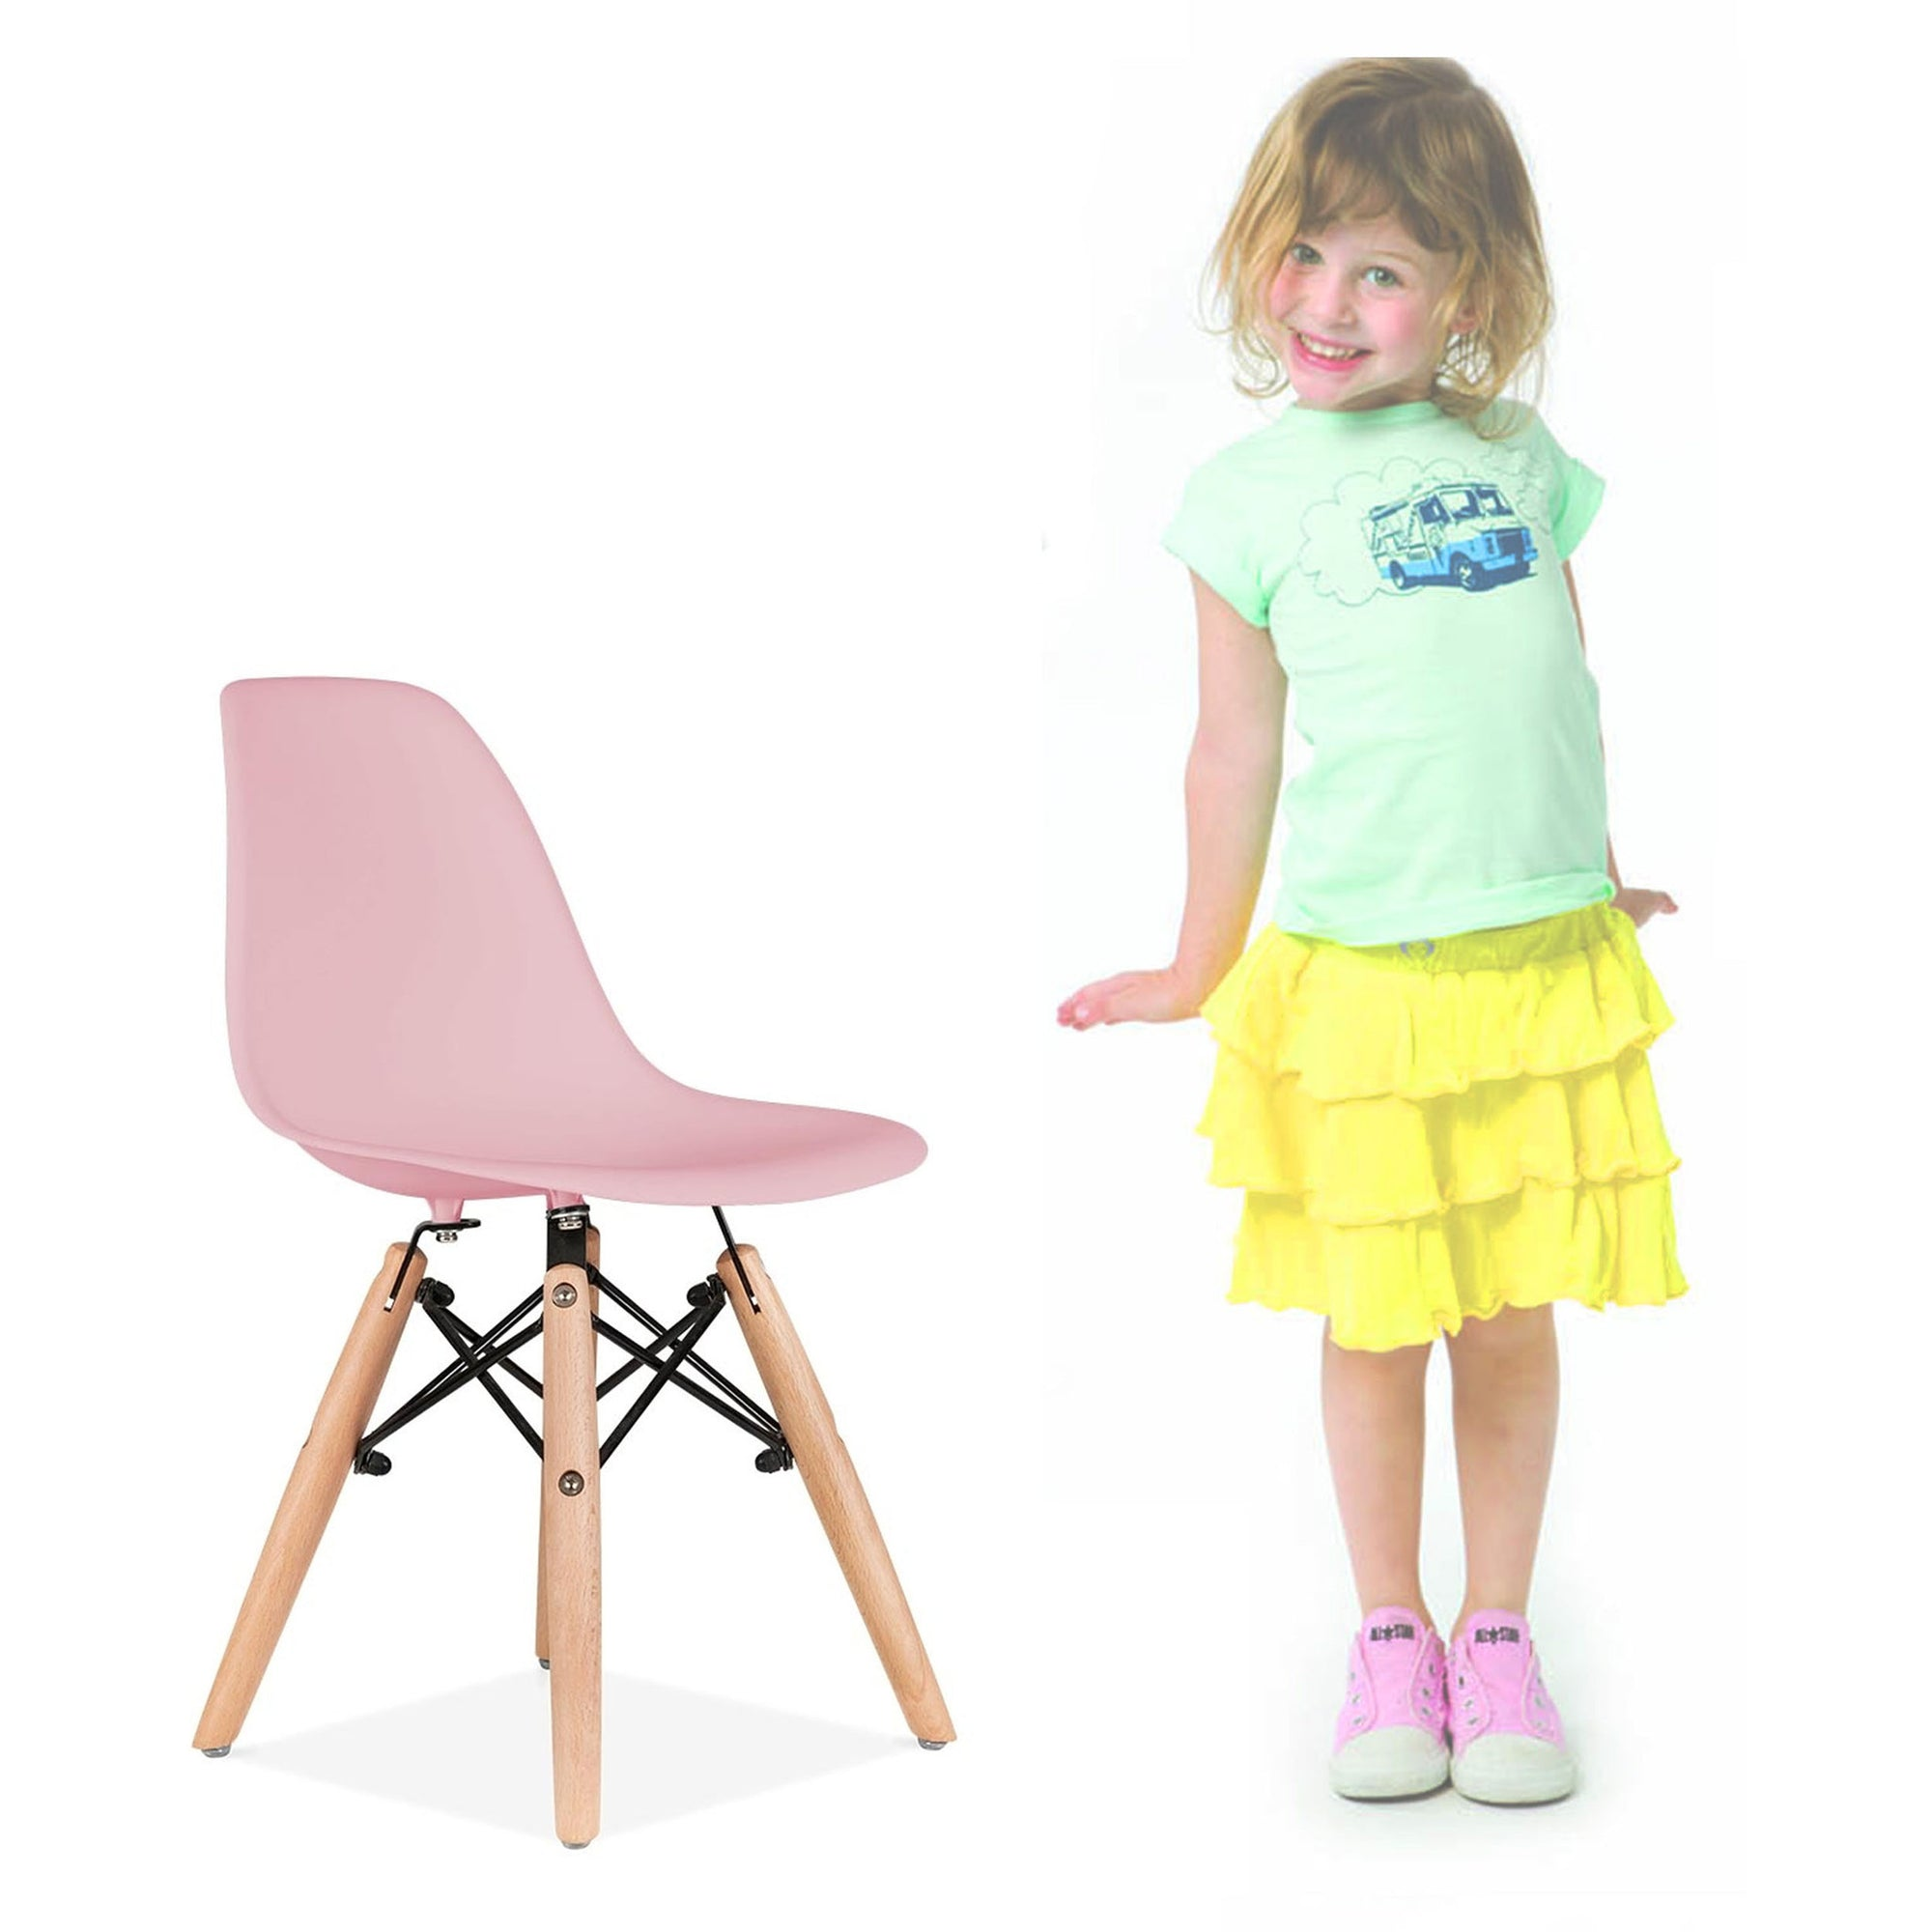 Kids Chair -Plastic- MSK0055P PC-0117W-P -  كرسي اطفال - بلاستيك - Shop Online Furniture and Home Decor Store in Dubai, UAE at ebarza